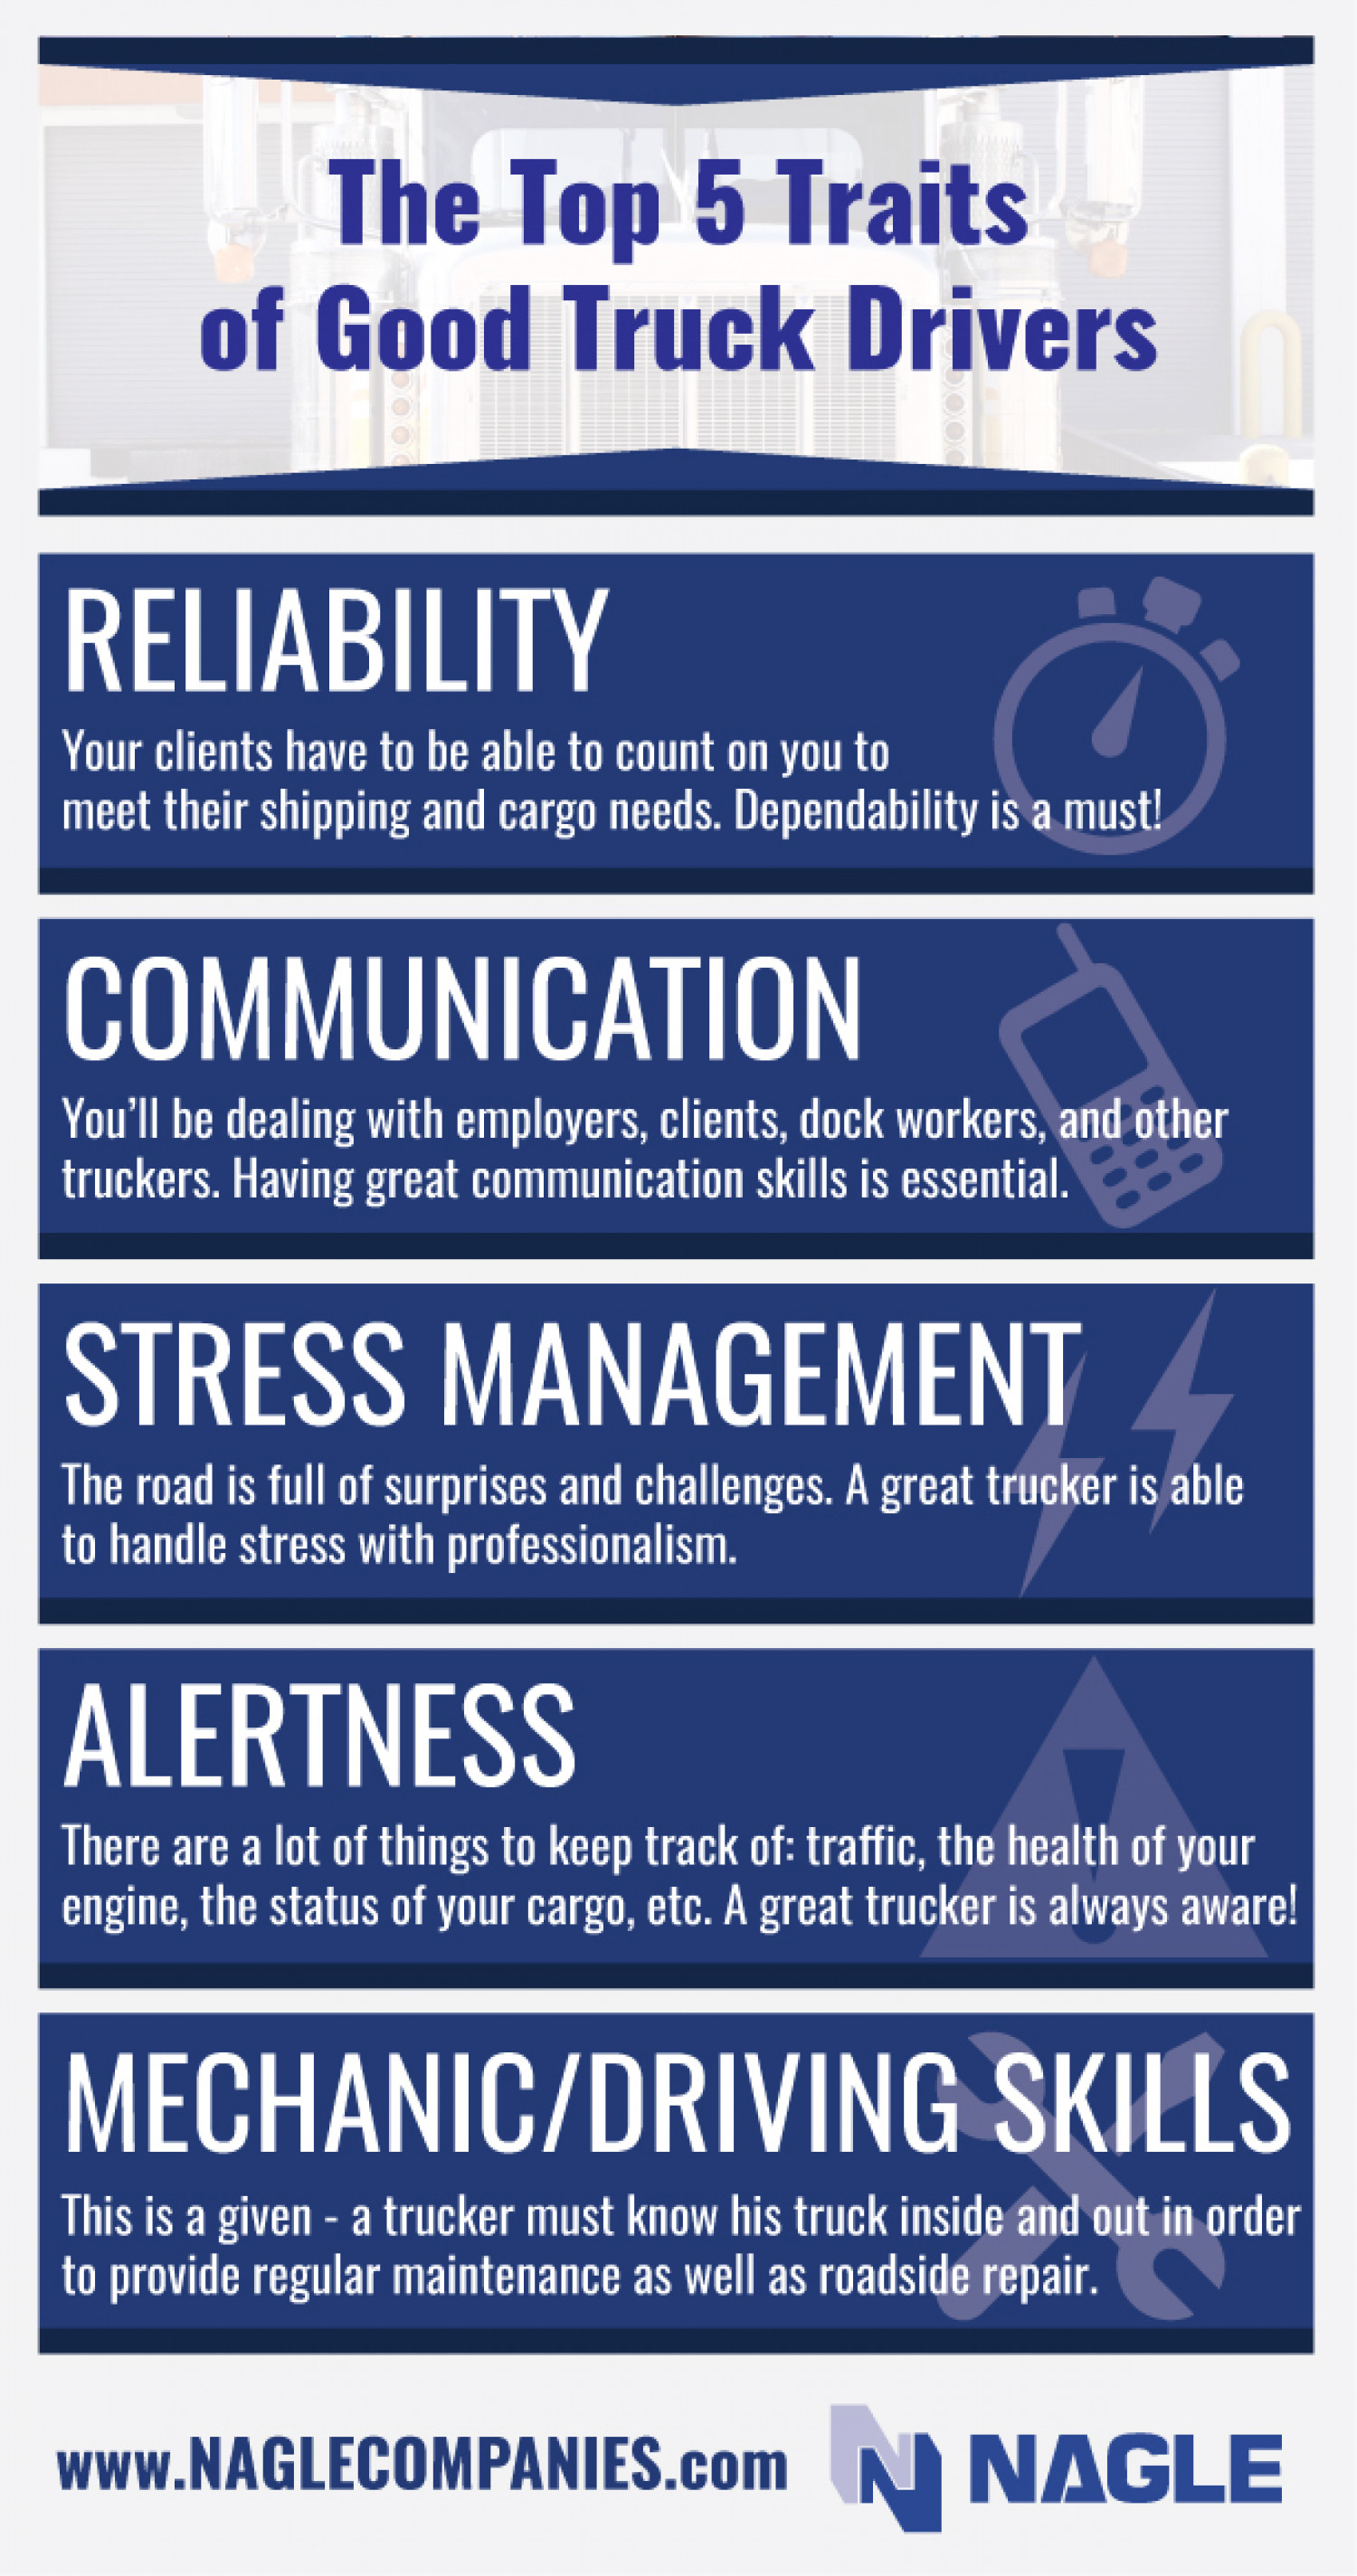 Top 5 Traits of Good Truck Drivers Infographic